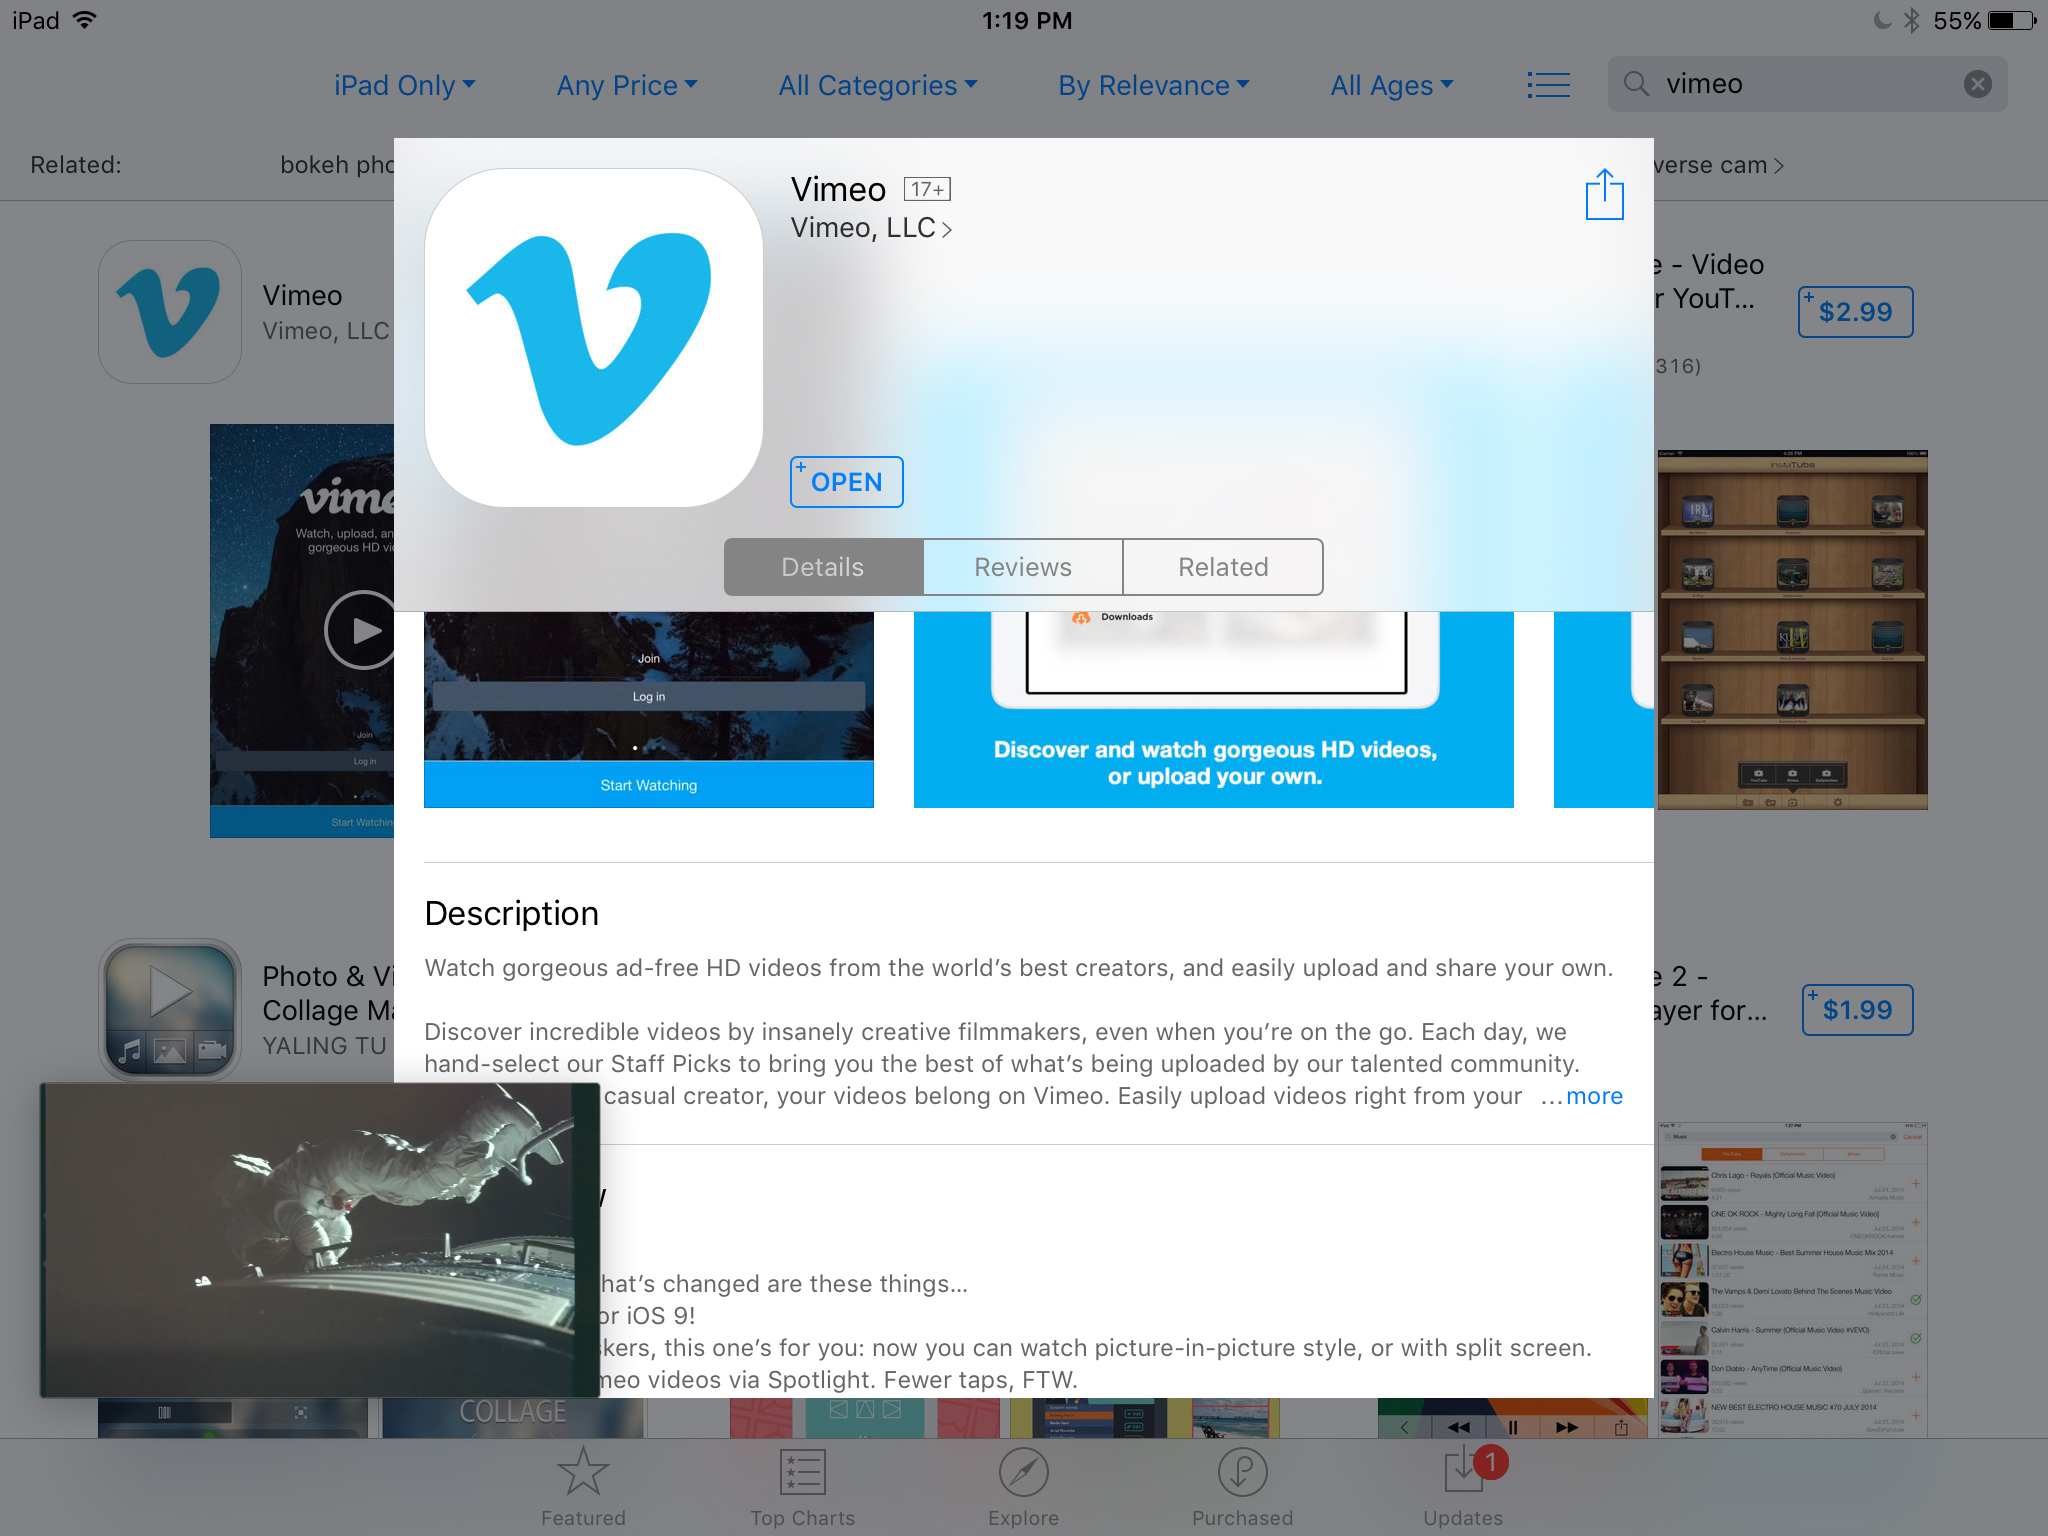 Vimeo update arrives with iOS 9 iPad multitasking support